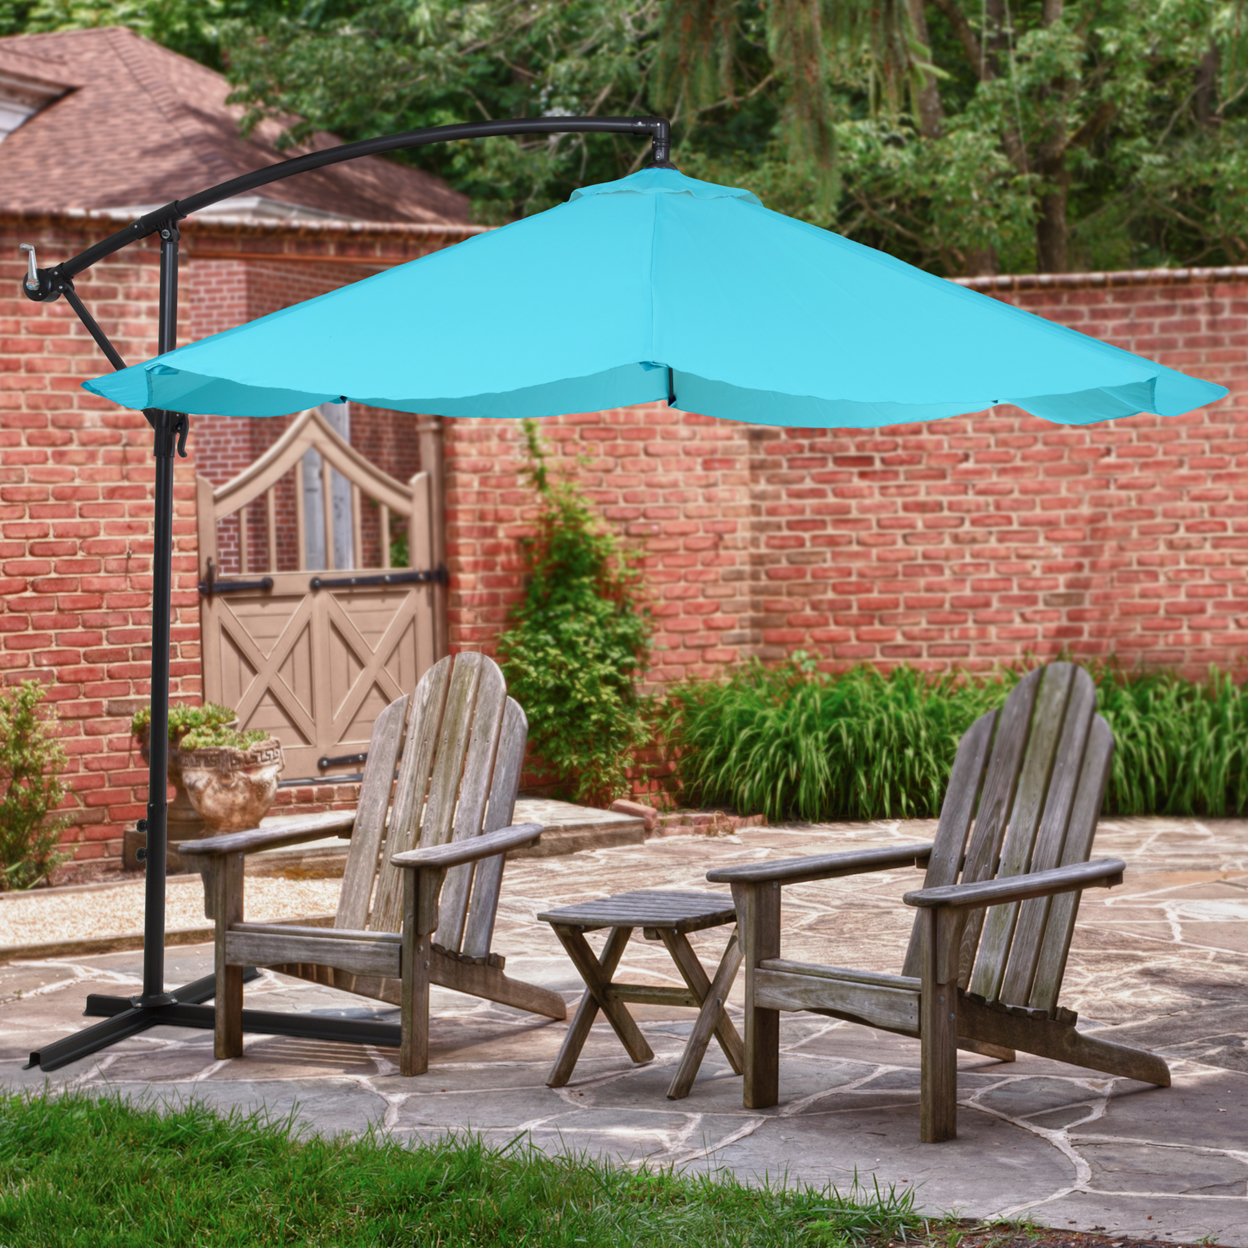 Offset 10 Foot Aluminum Hanging Patio Umbrella Sky Blue with Cross Base Bars цена 2017